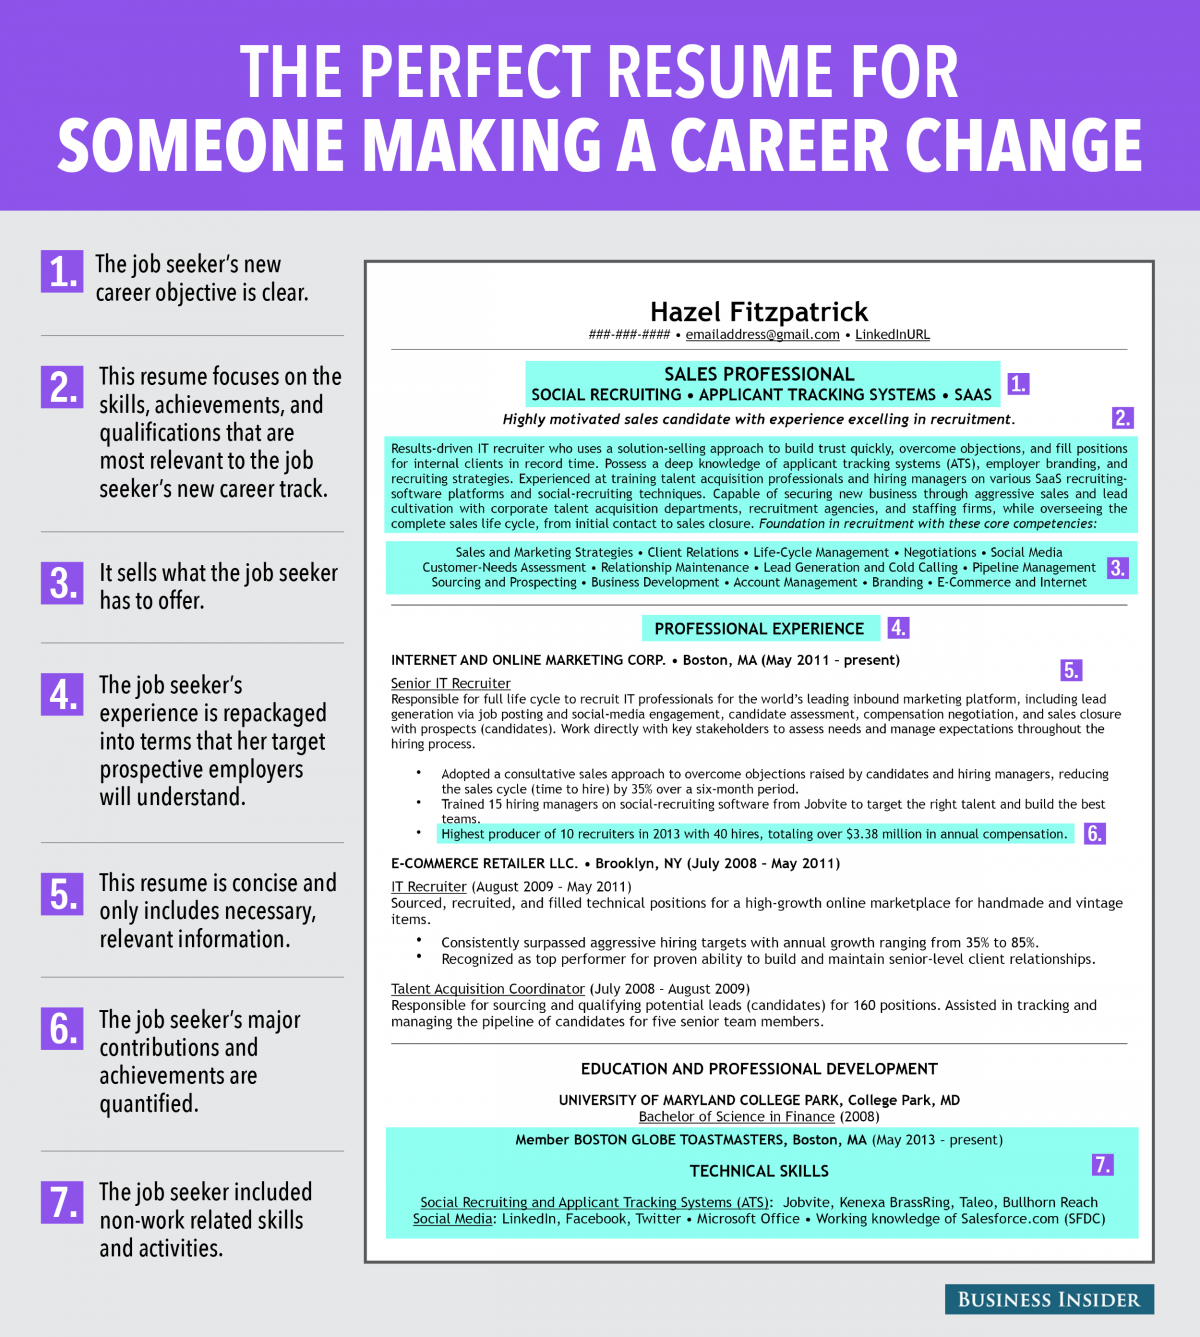 how to write career change resume